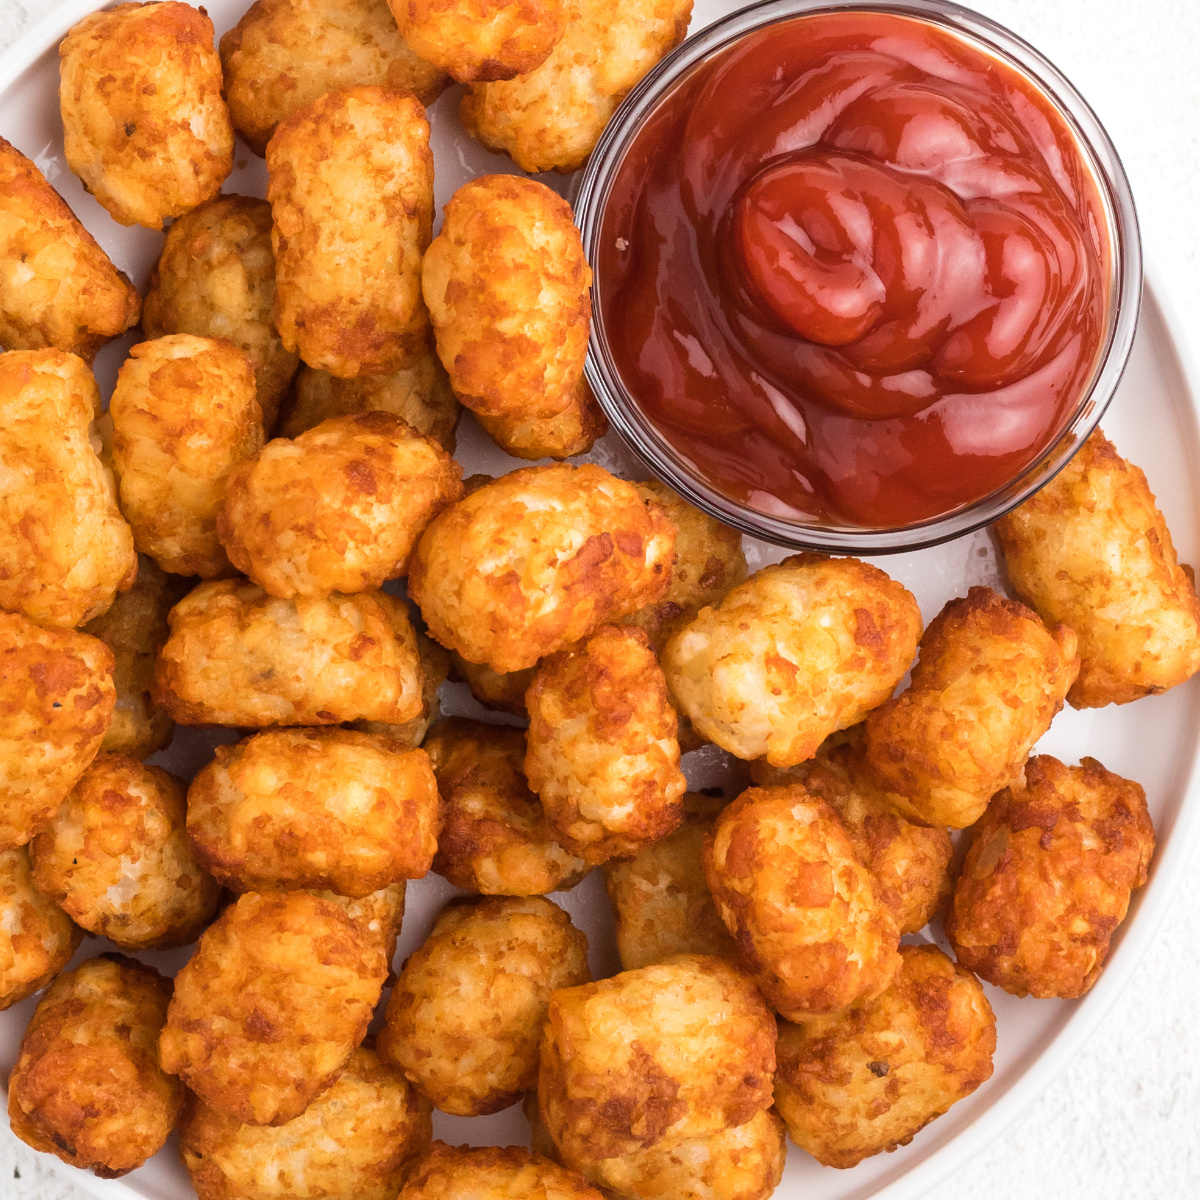 Tater Tots on a white plate that were made in the Air Fryer. A small bowl of ketchup on the side.